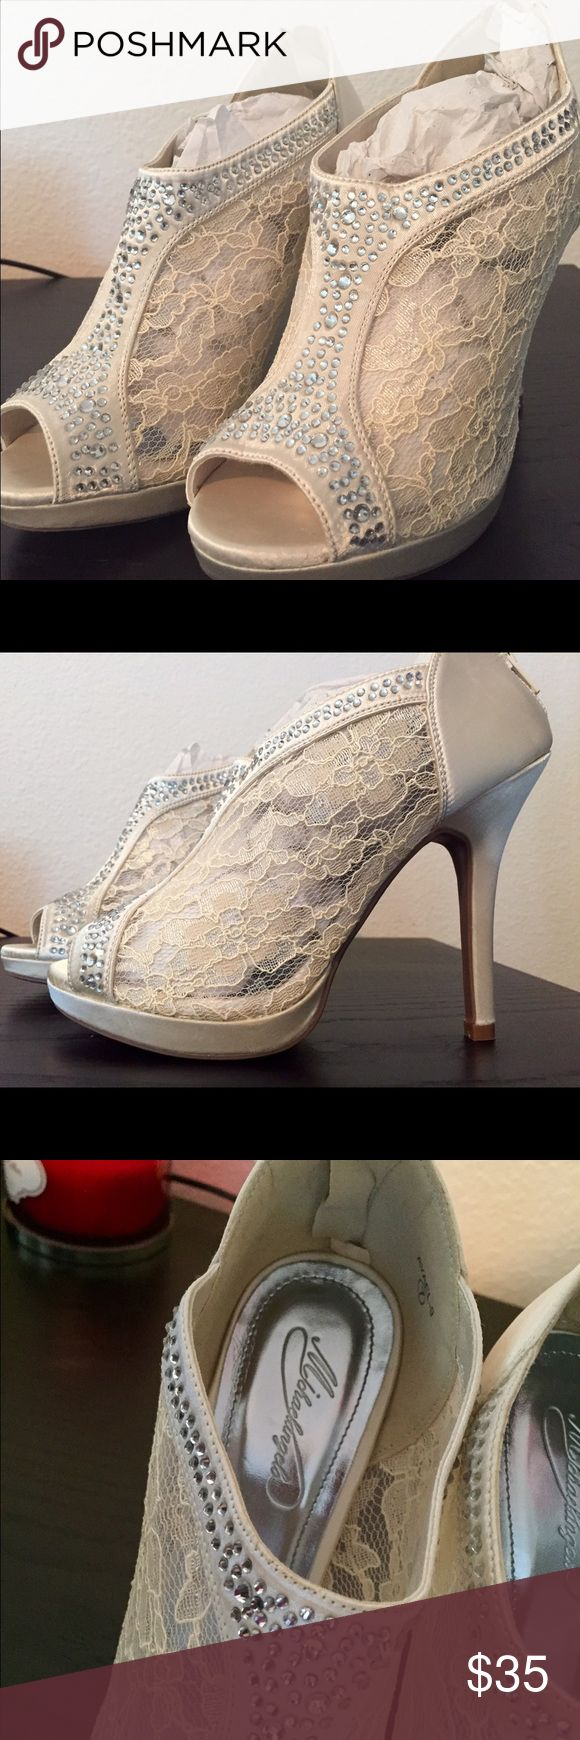 Formal Shoes for weddings Ivory color Lacey  high heels shoes great for wedding. Brand new! I bought in David's Bridal shop last year David's Bridal Shoes Heels